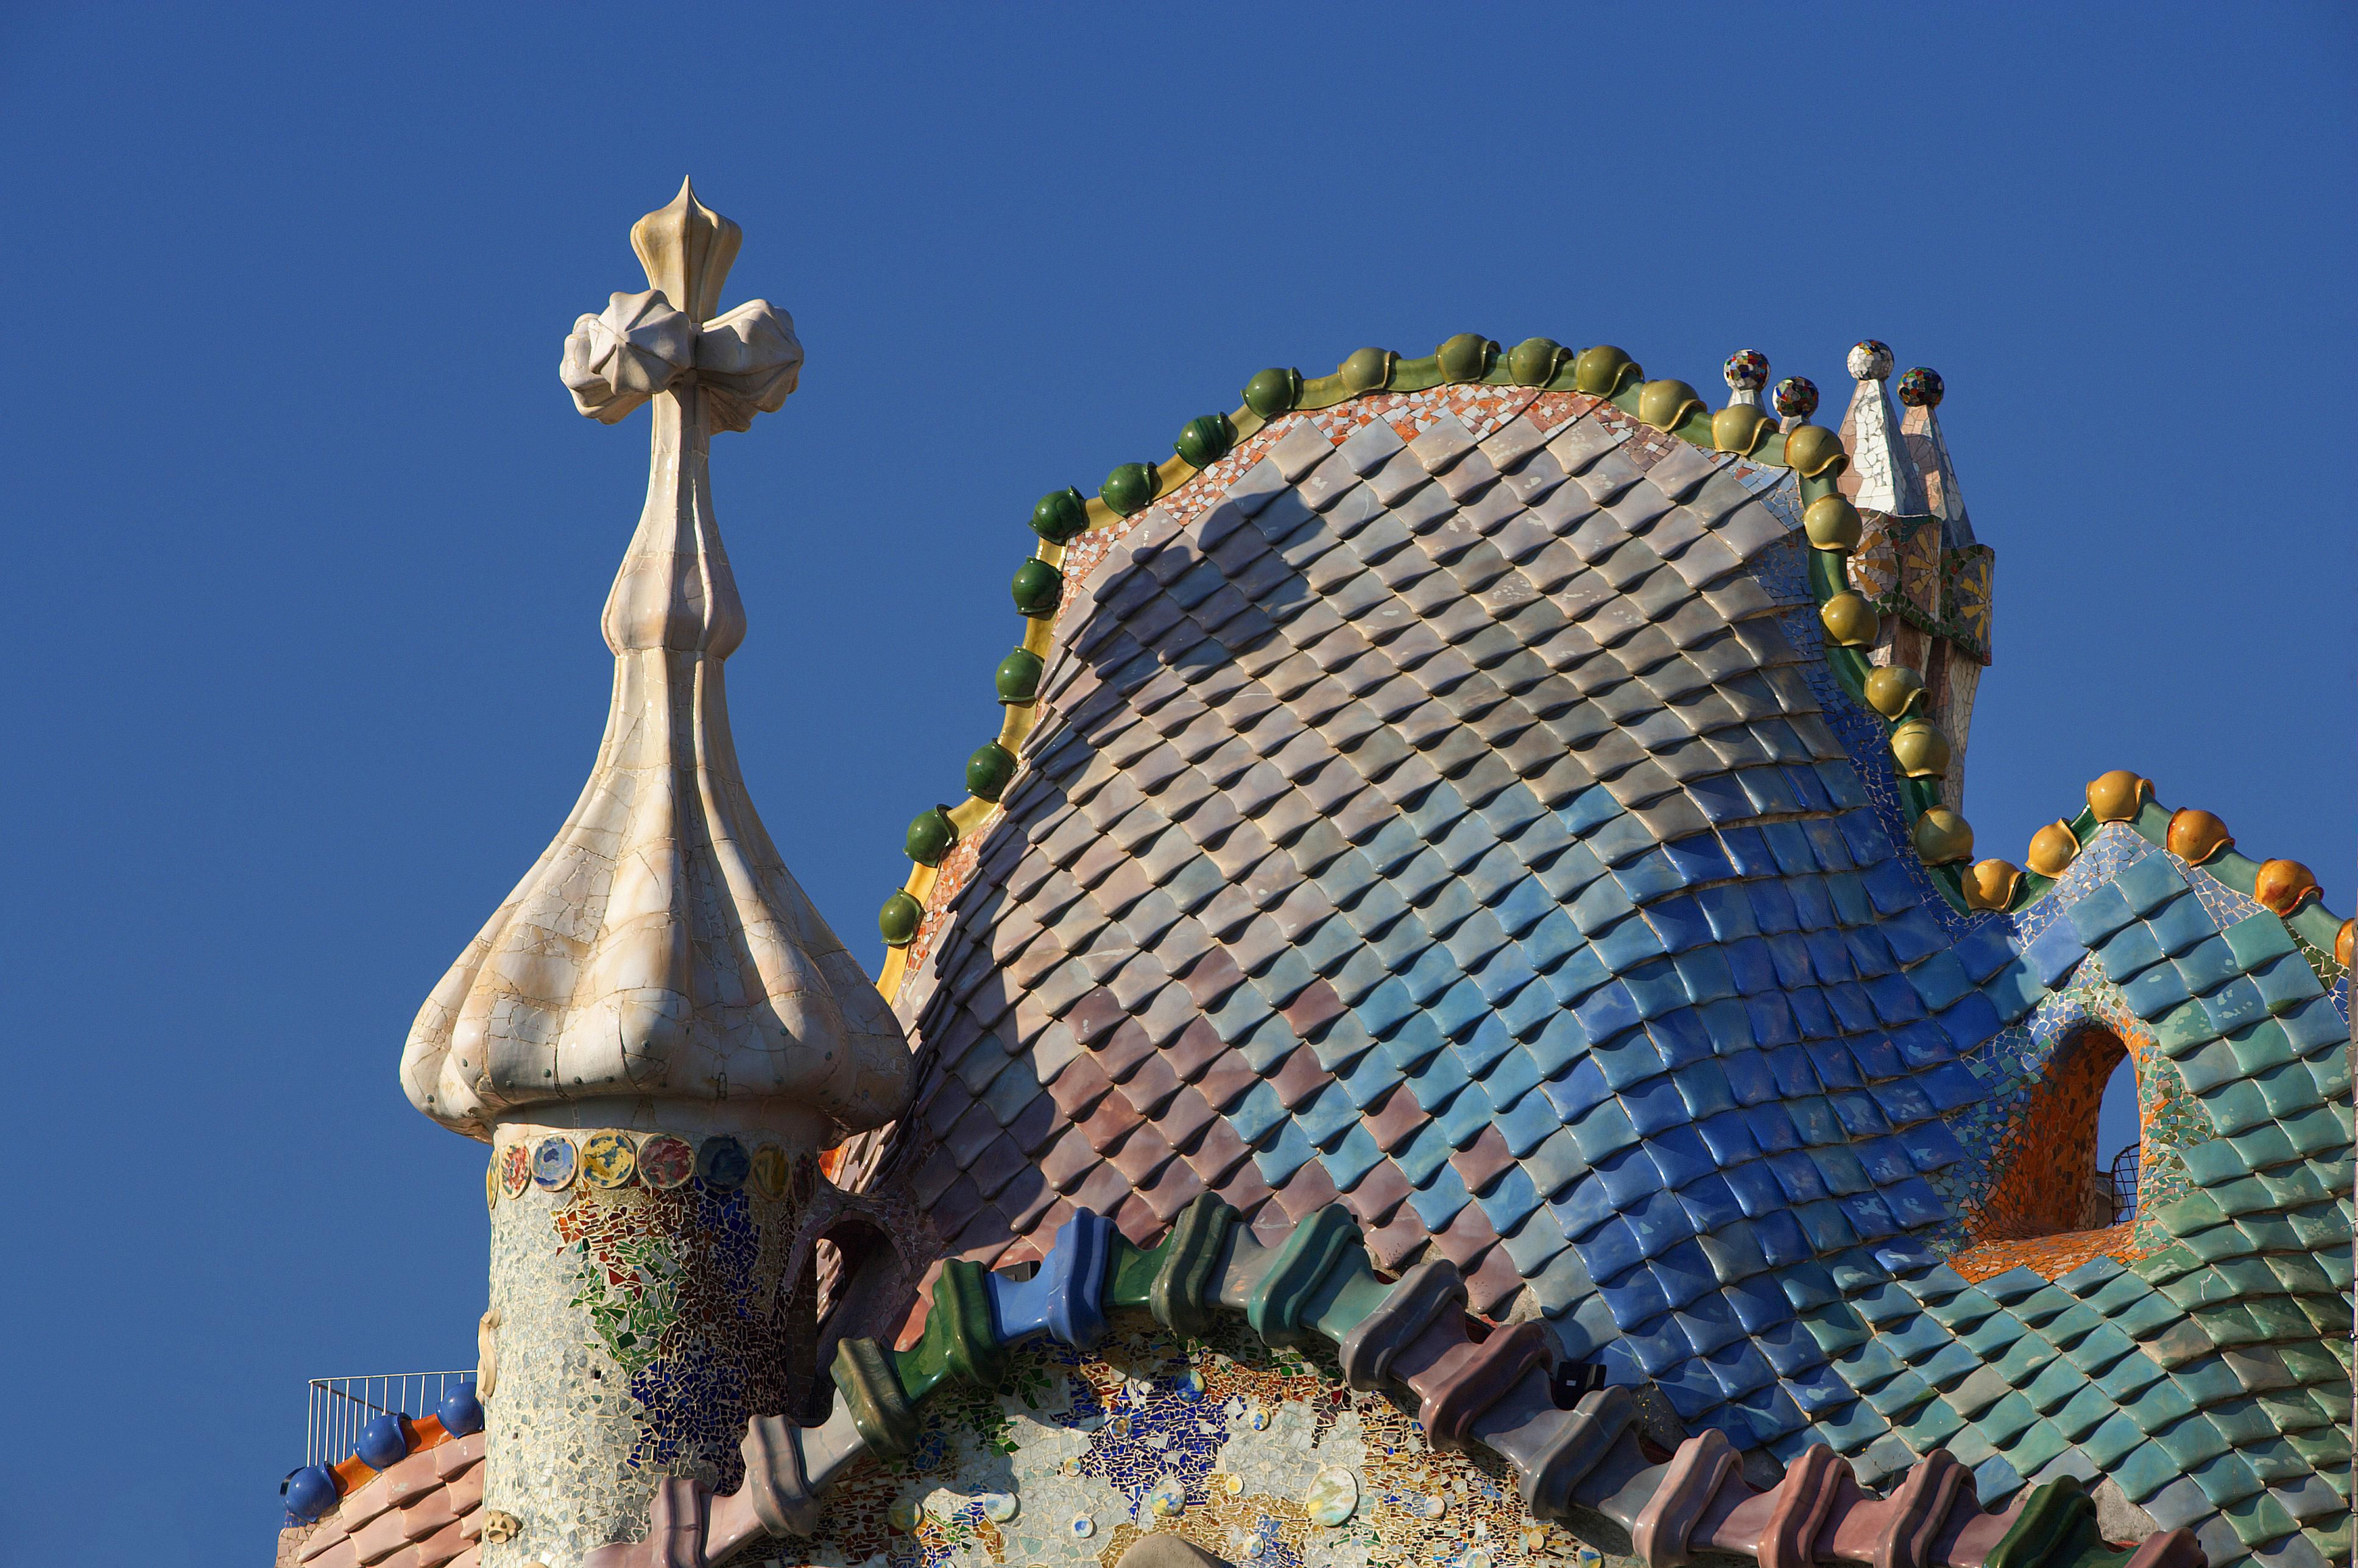 Gaudi-design roof with tiles of the Casa Batllo in Barcelona.